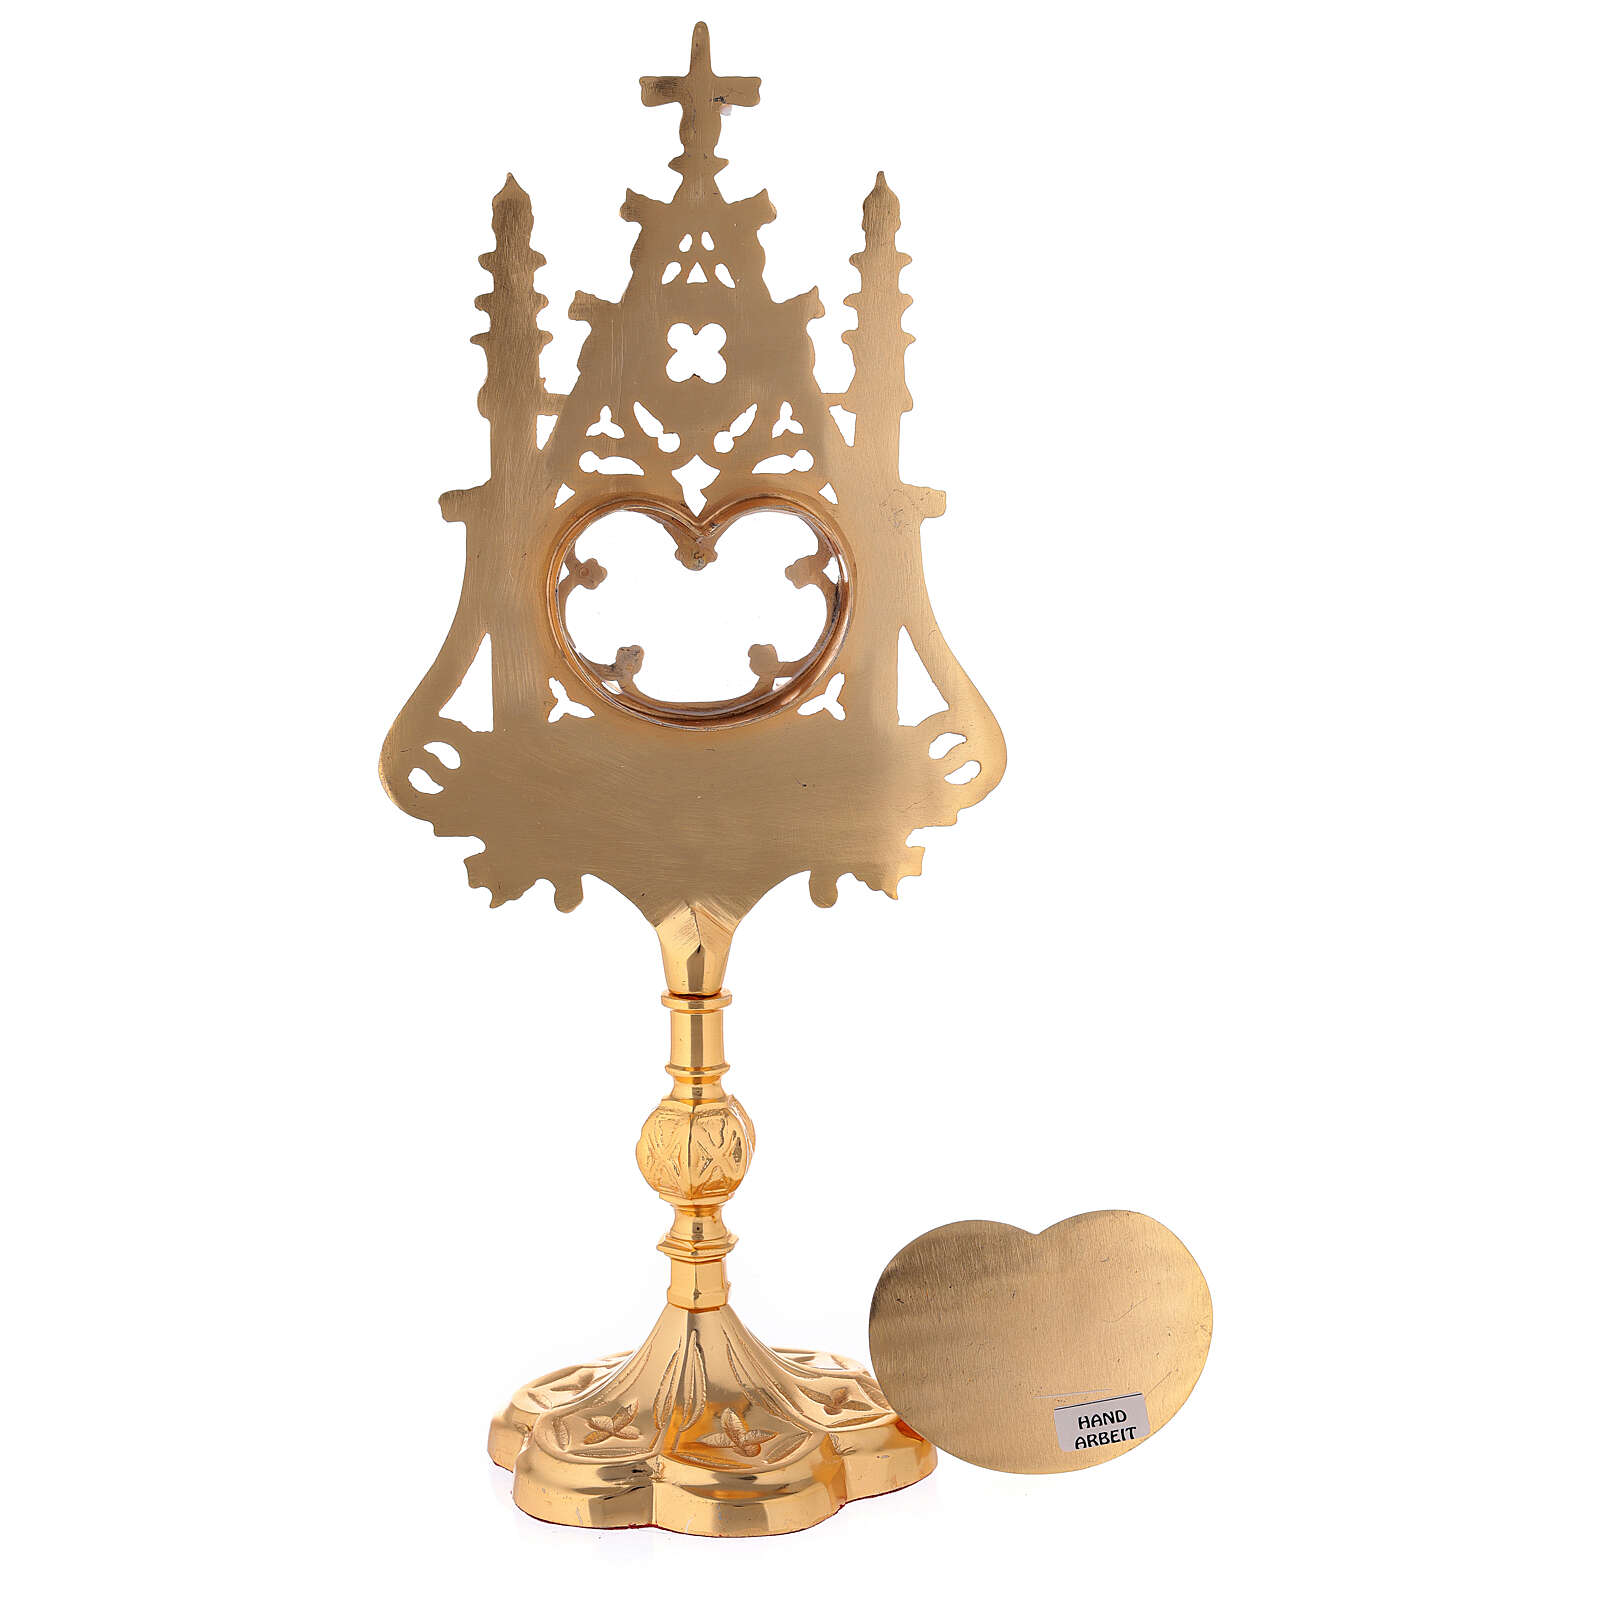 Neogothic gold plated brass reliquary with red velvet window h 12 1/2 in 4